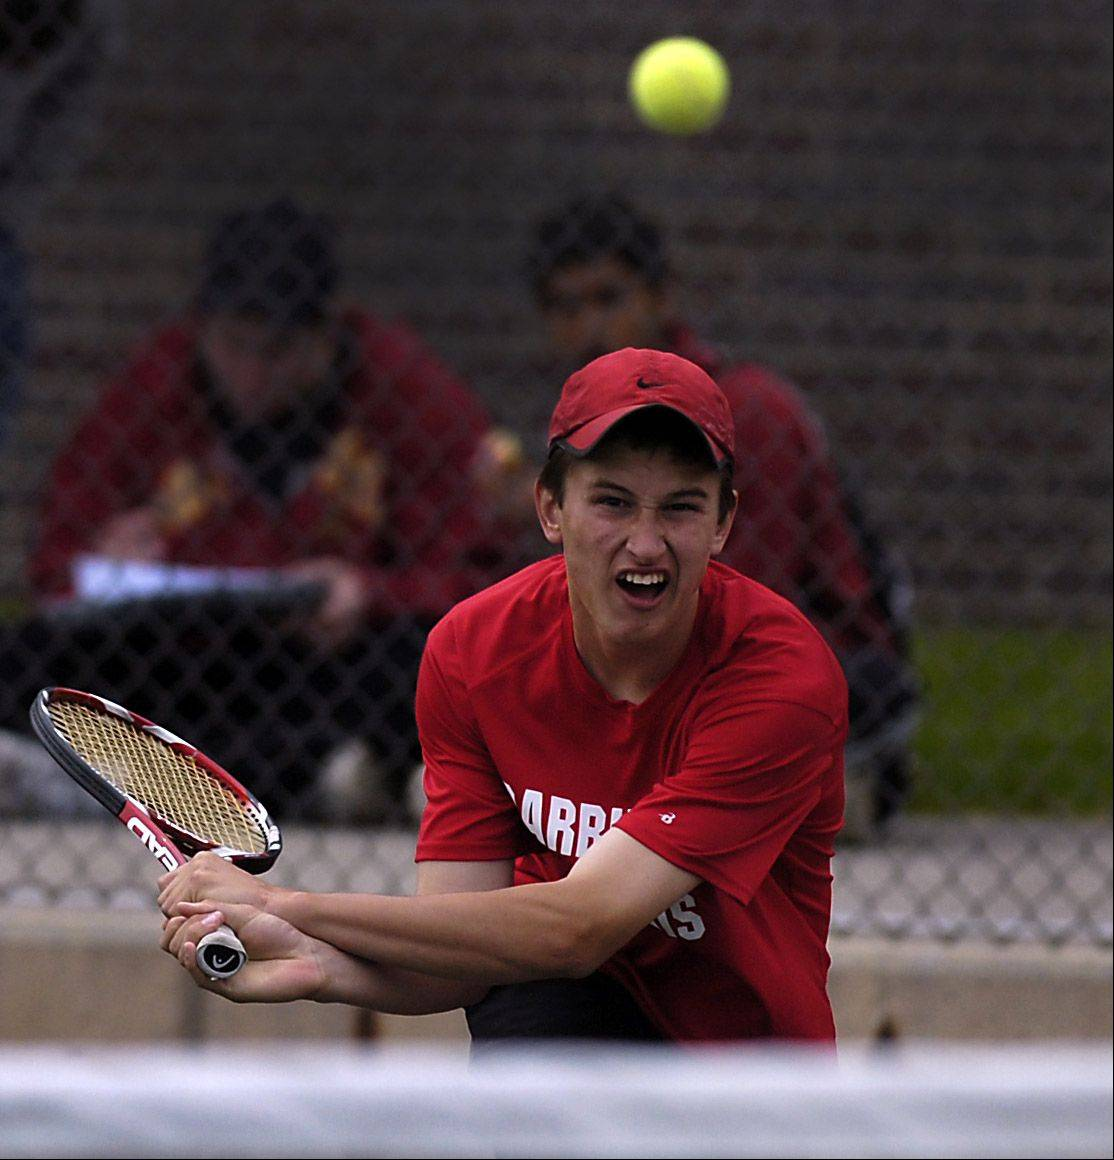 George Coll hopes to lead Barrington to another successful Mid-Suburban League boys tennis season.